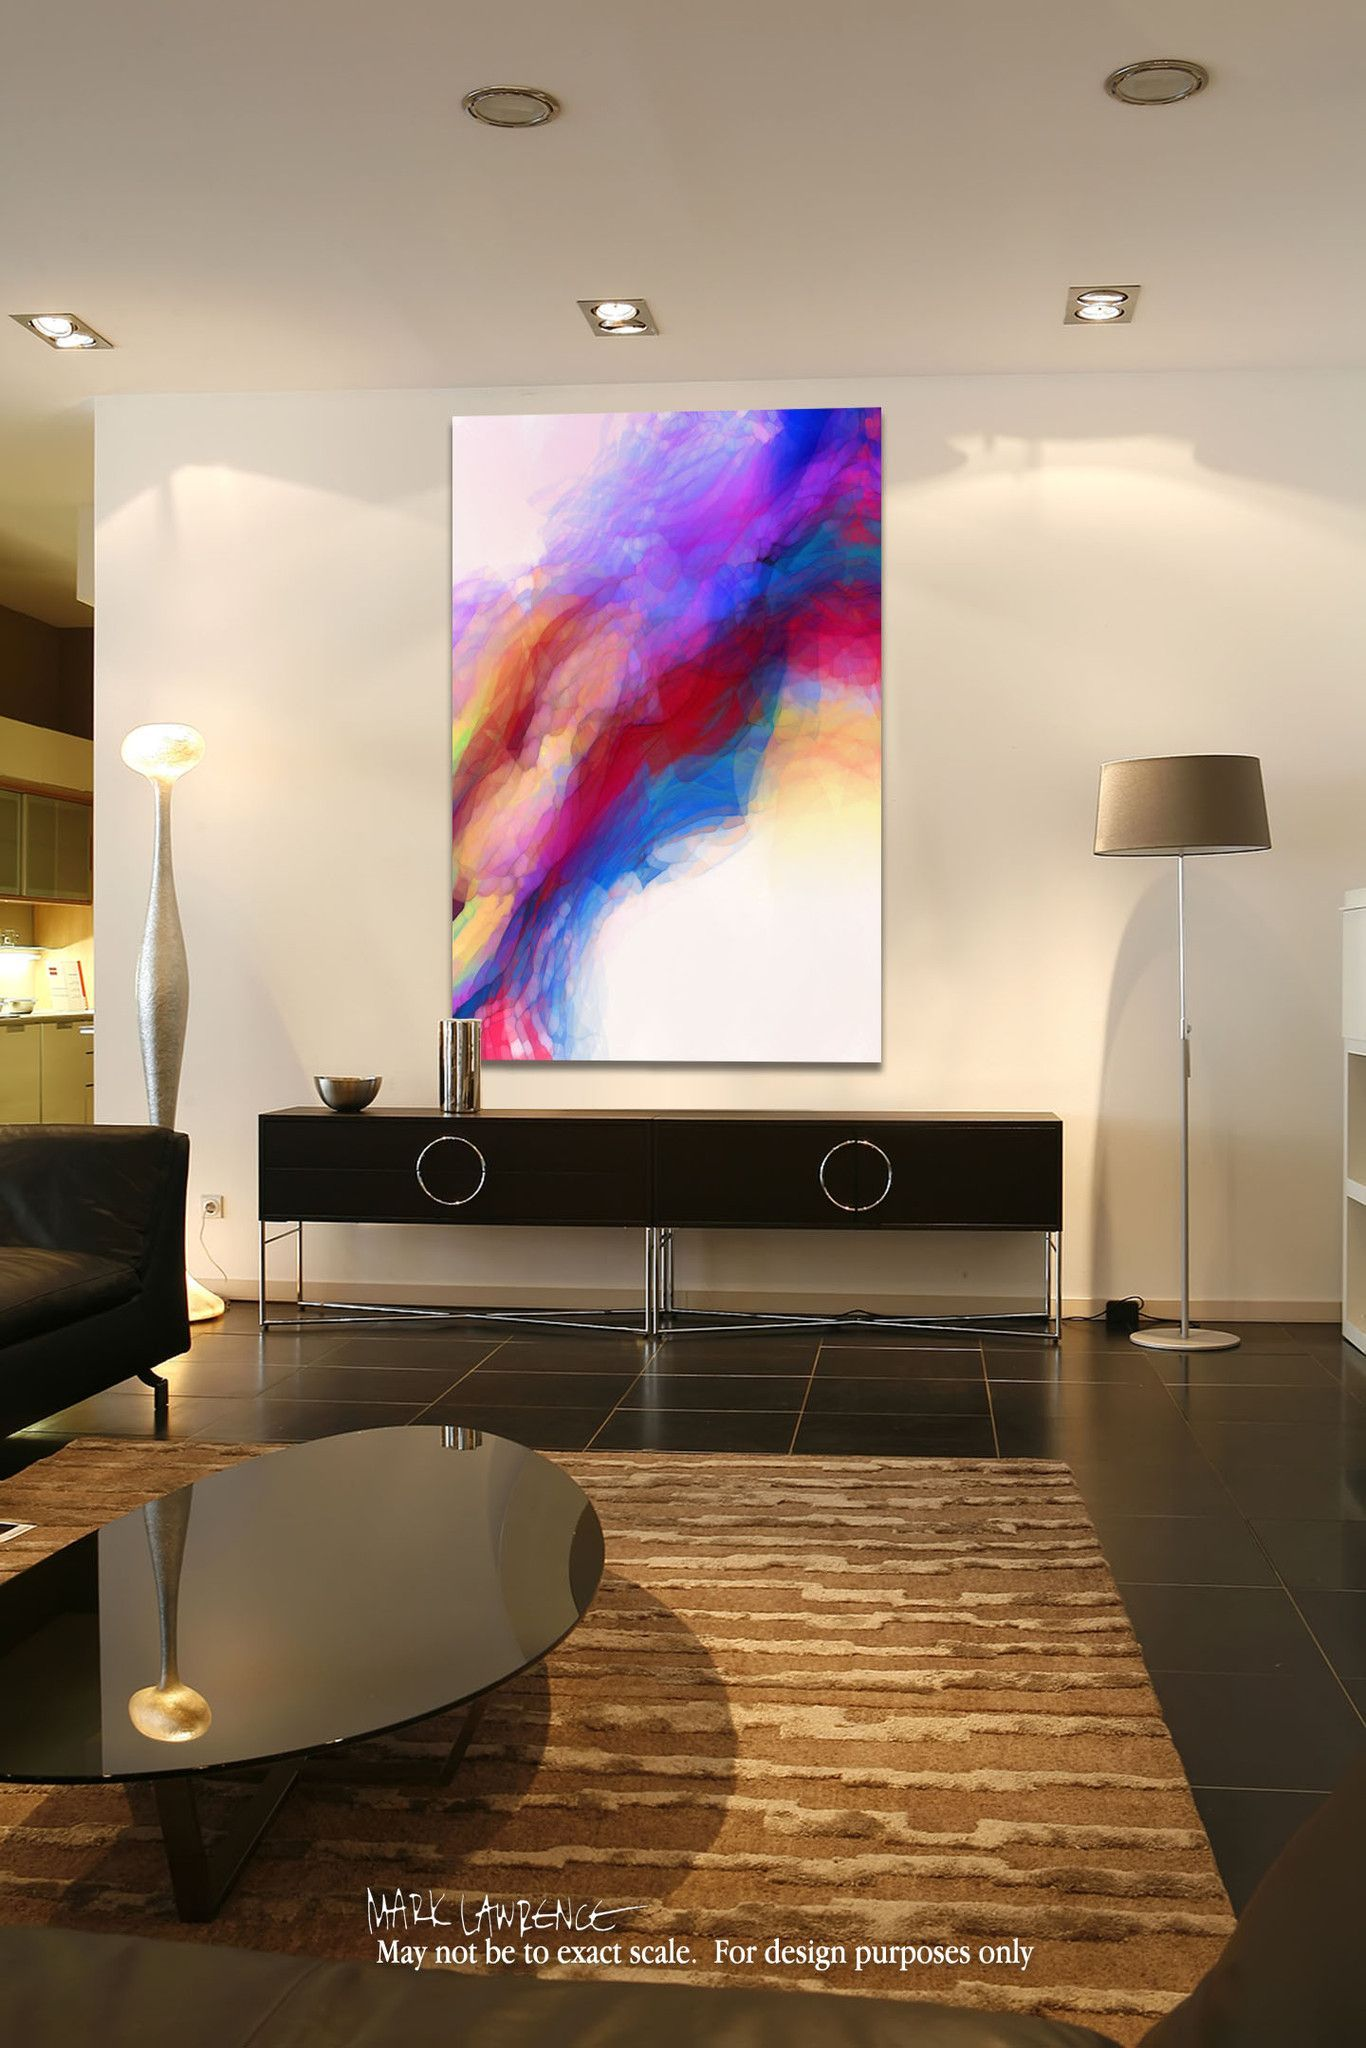 For where your treasure is, there your heart will be also. Luke 12:34 - Limited Edition Art. Exclusively from Mark Lawrence Gallery - All art is custom made at the time of order by the artist - All ar